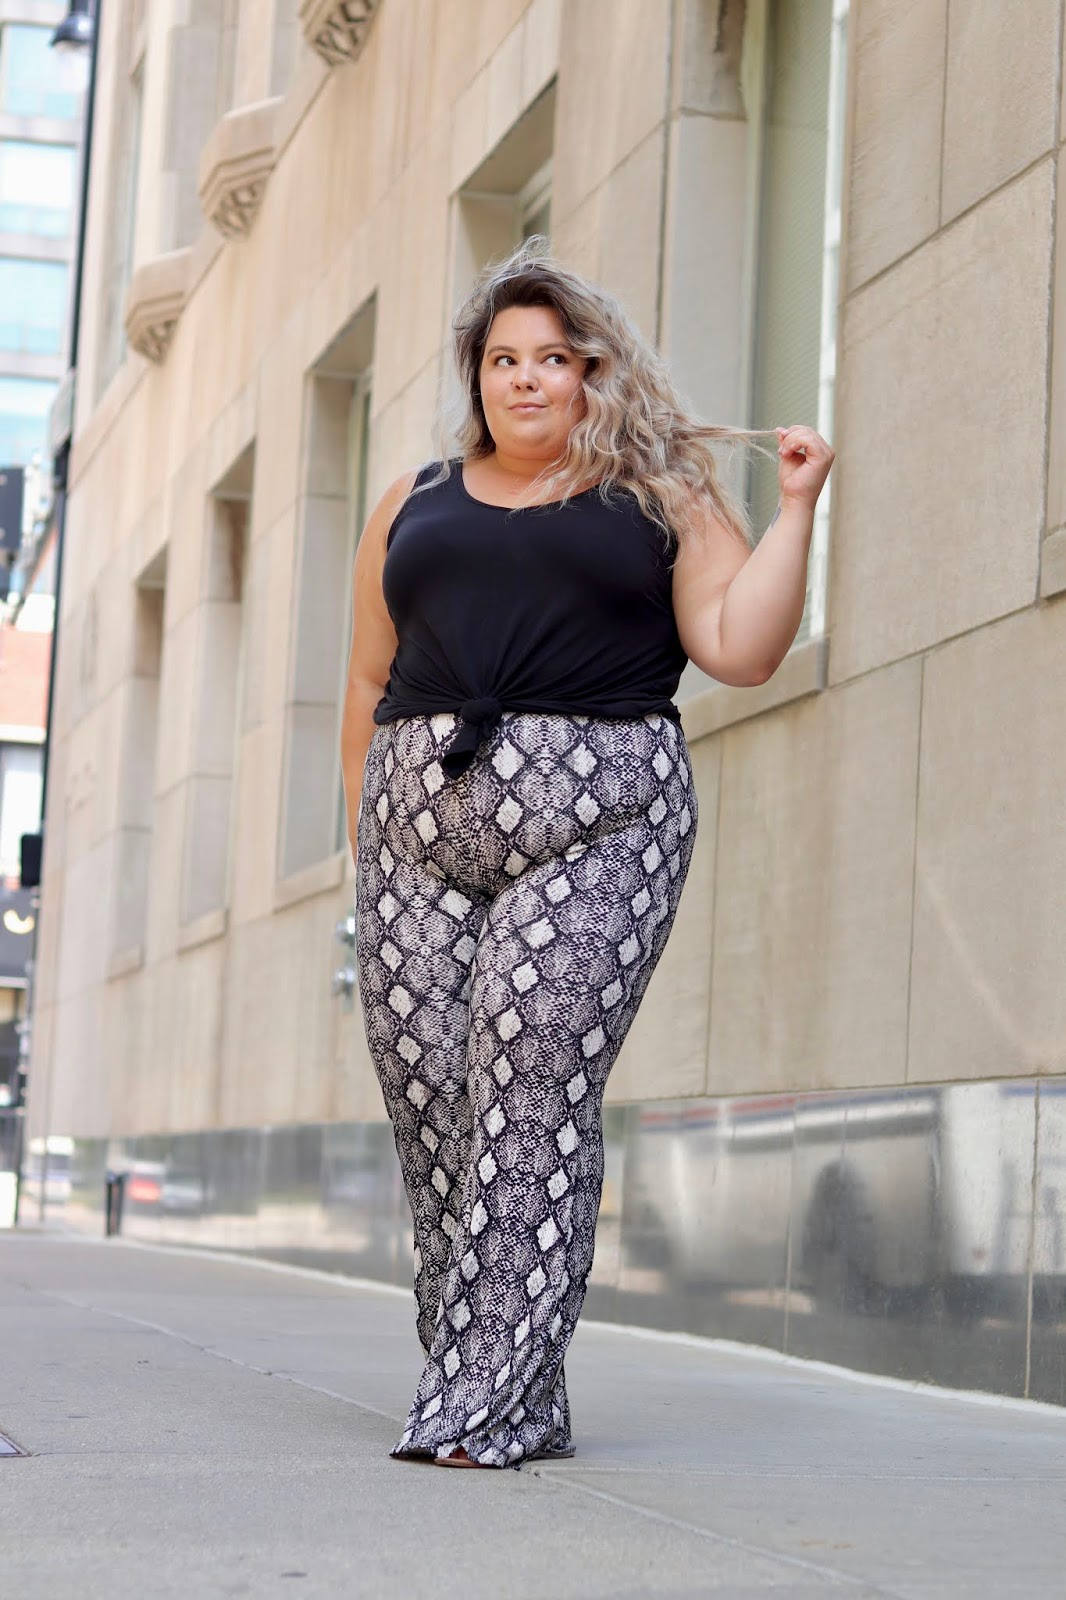 Chicago Plus Size Petite Fashion Blogger, influencer, YouTuber, and model Natalie Craig, of Natalie in the City, reviews Chic Soul's snake skin bell bottoms and basic black tank top.